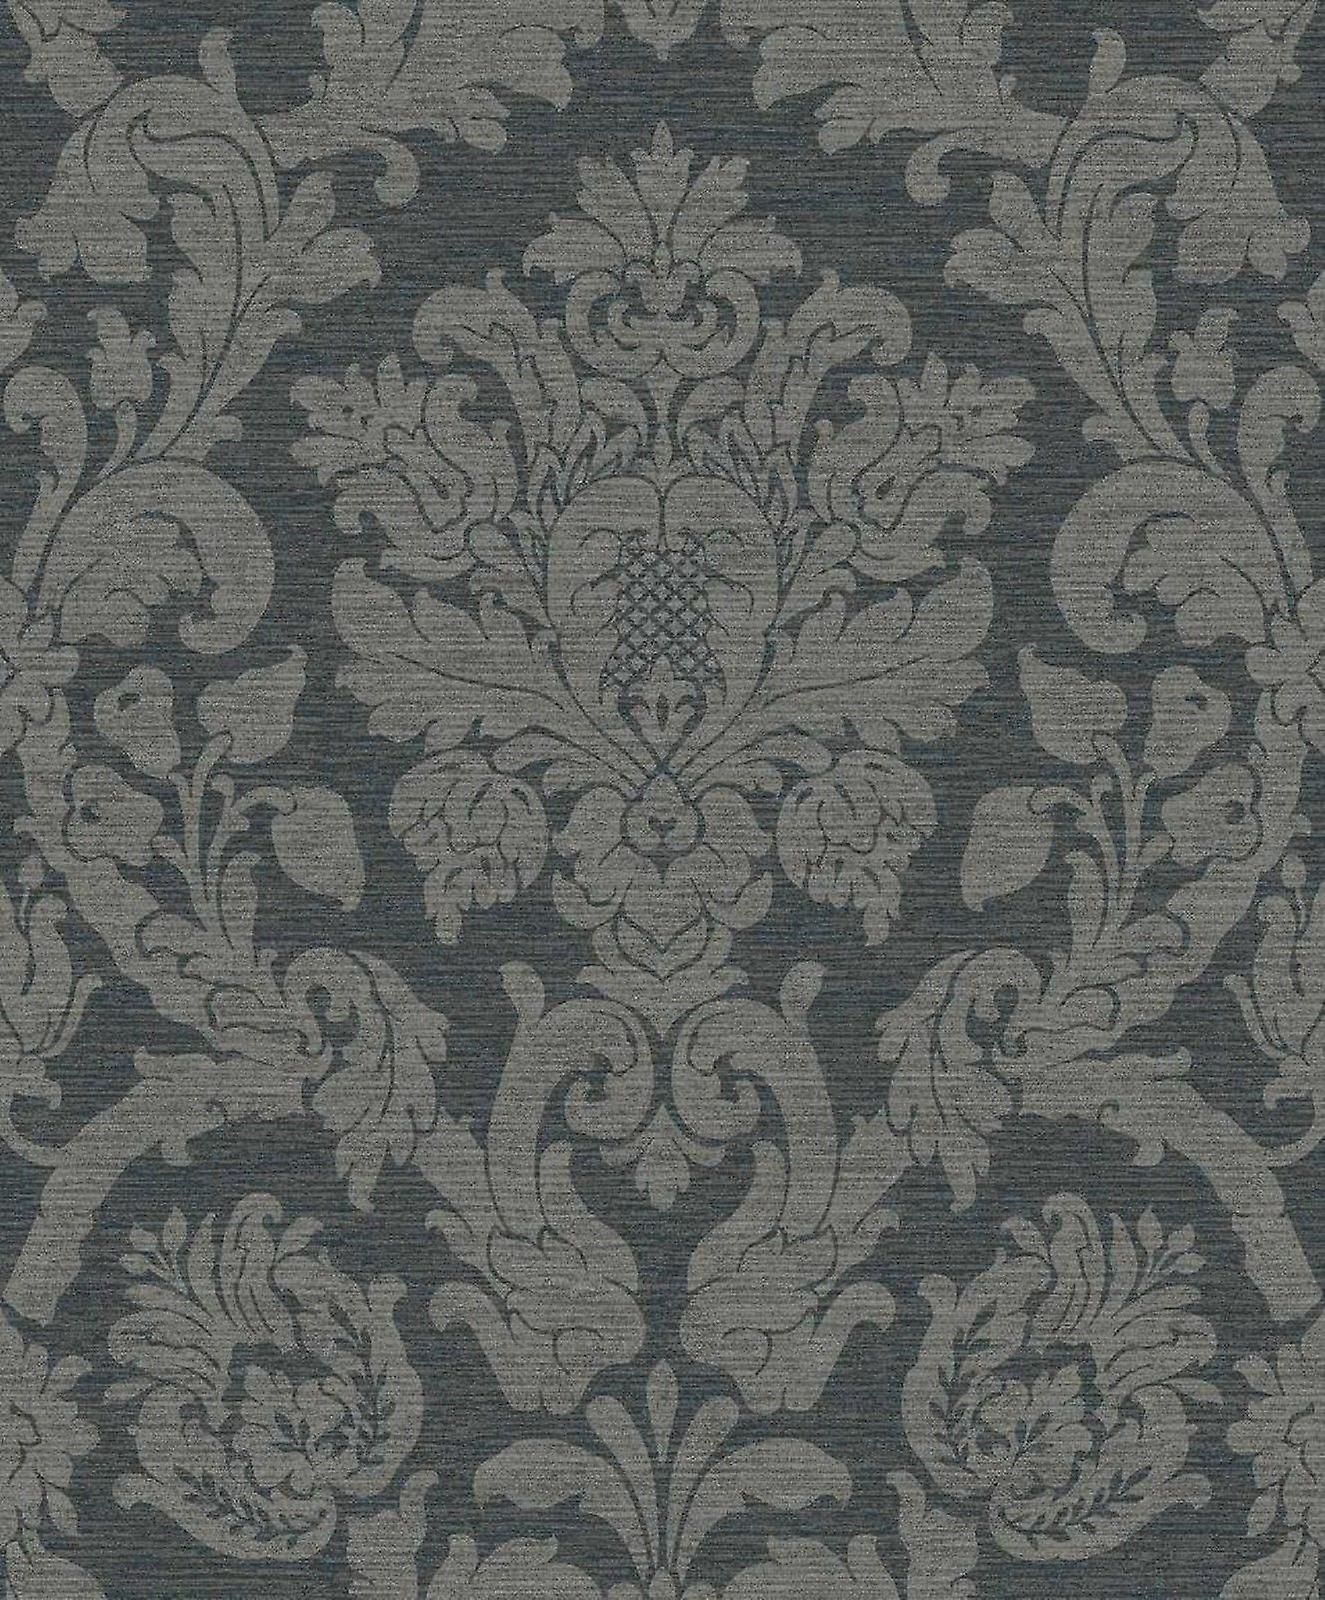 Damask Wallpaper Kensington Charcoal Glitter Luxury Washable Grandeco